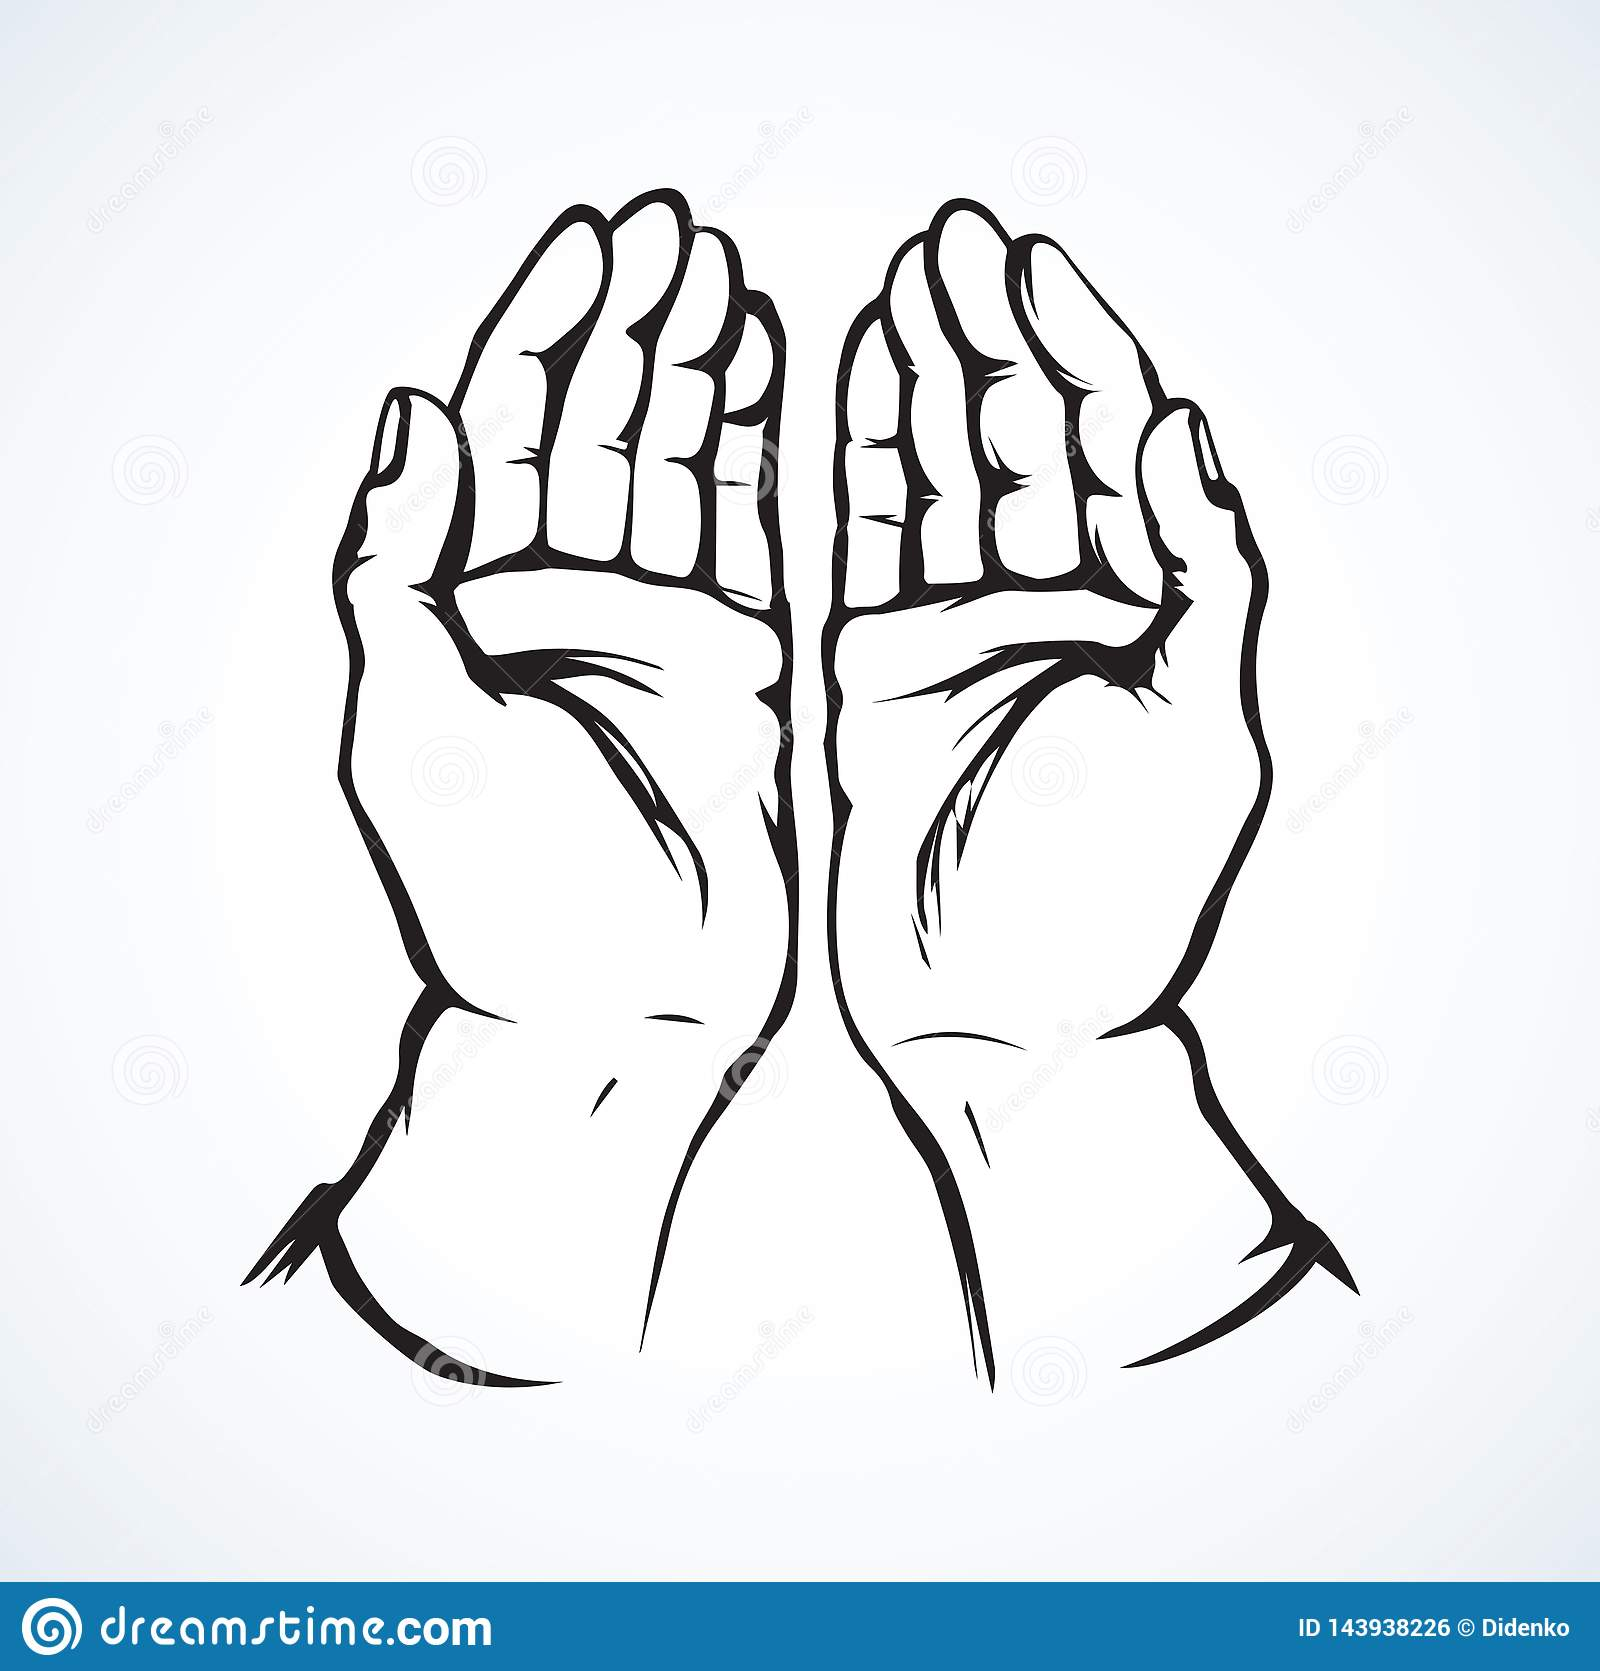 praying hands vector drawing stock vector illustration of graphic female 143938226 https www dreamstime com praying hands vector drawing sin body palm help praise white paper space text lord show care concept line logo pictogram image143938226